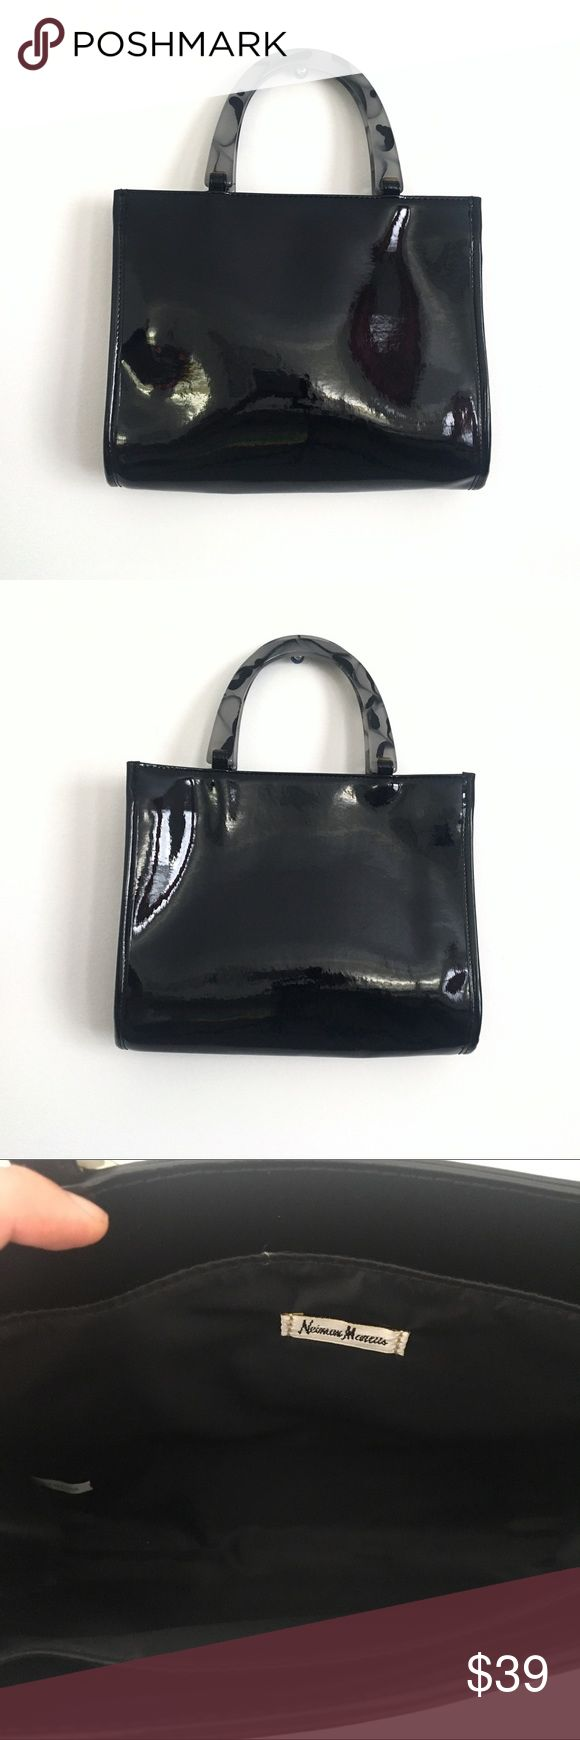 """Neiman Marcus Black Patent Leather Handbag Neiman Marcus Black Patent Leather Handbag   * Chic and elegant tote bag features marble look handles. In great condition with one minor scratch.  * Approximate measurements: L: 11-1/8"""", H: 8-3/4"""", Handle: 5-1/4"""", Opens: 7""""  📦 Bundle + save on shipping  📫 Same day shipping M-F 🚫 NO TRADES Neiman Marcus Bags"""